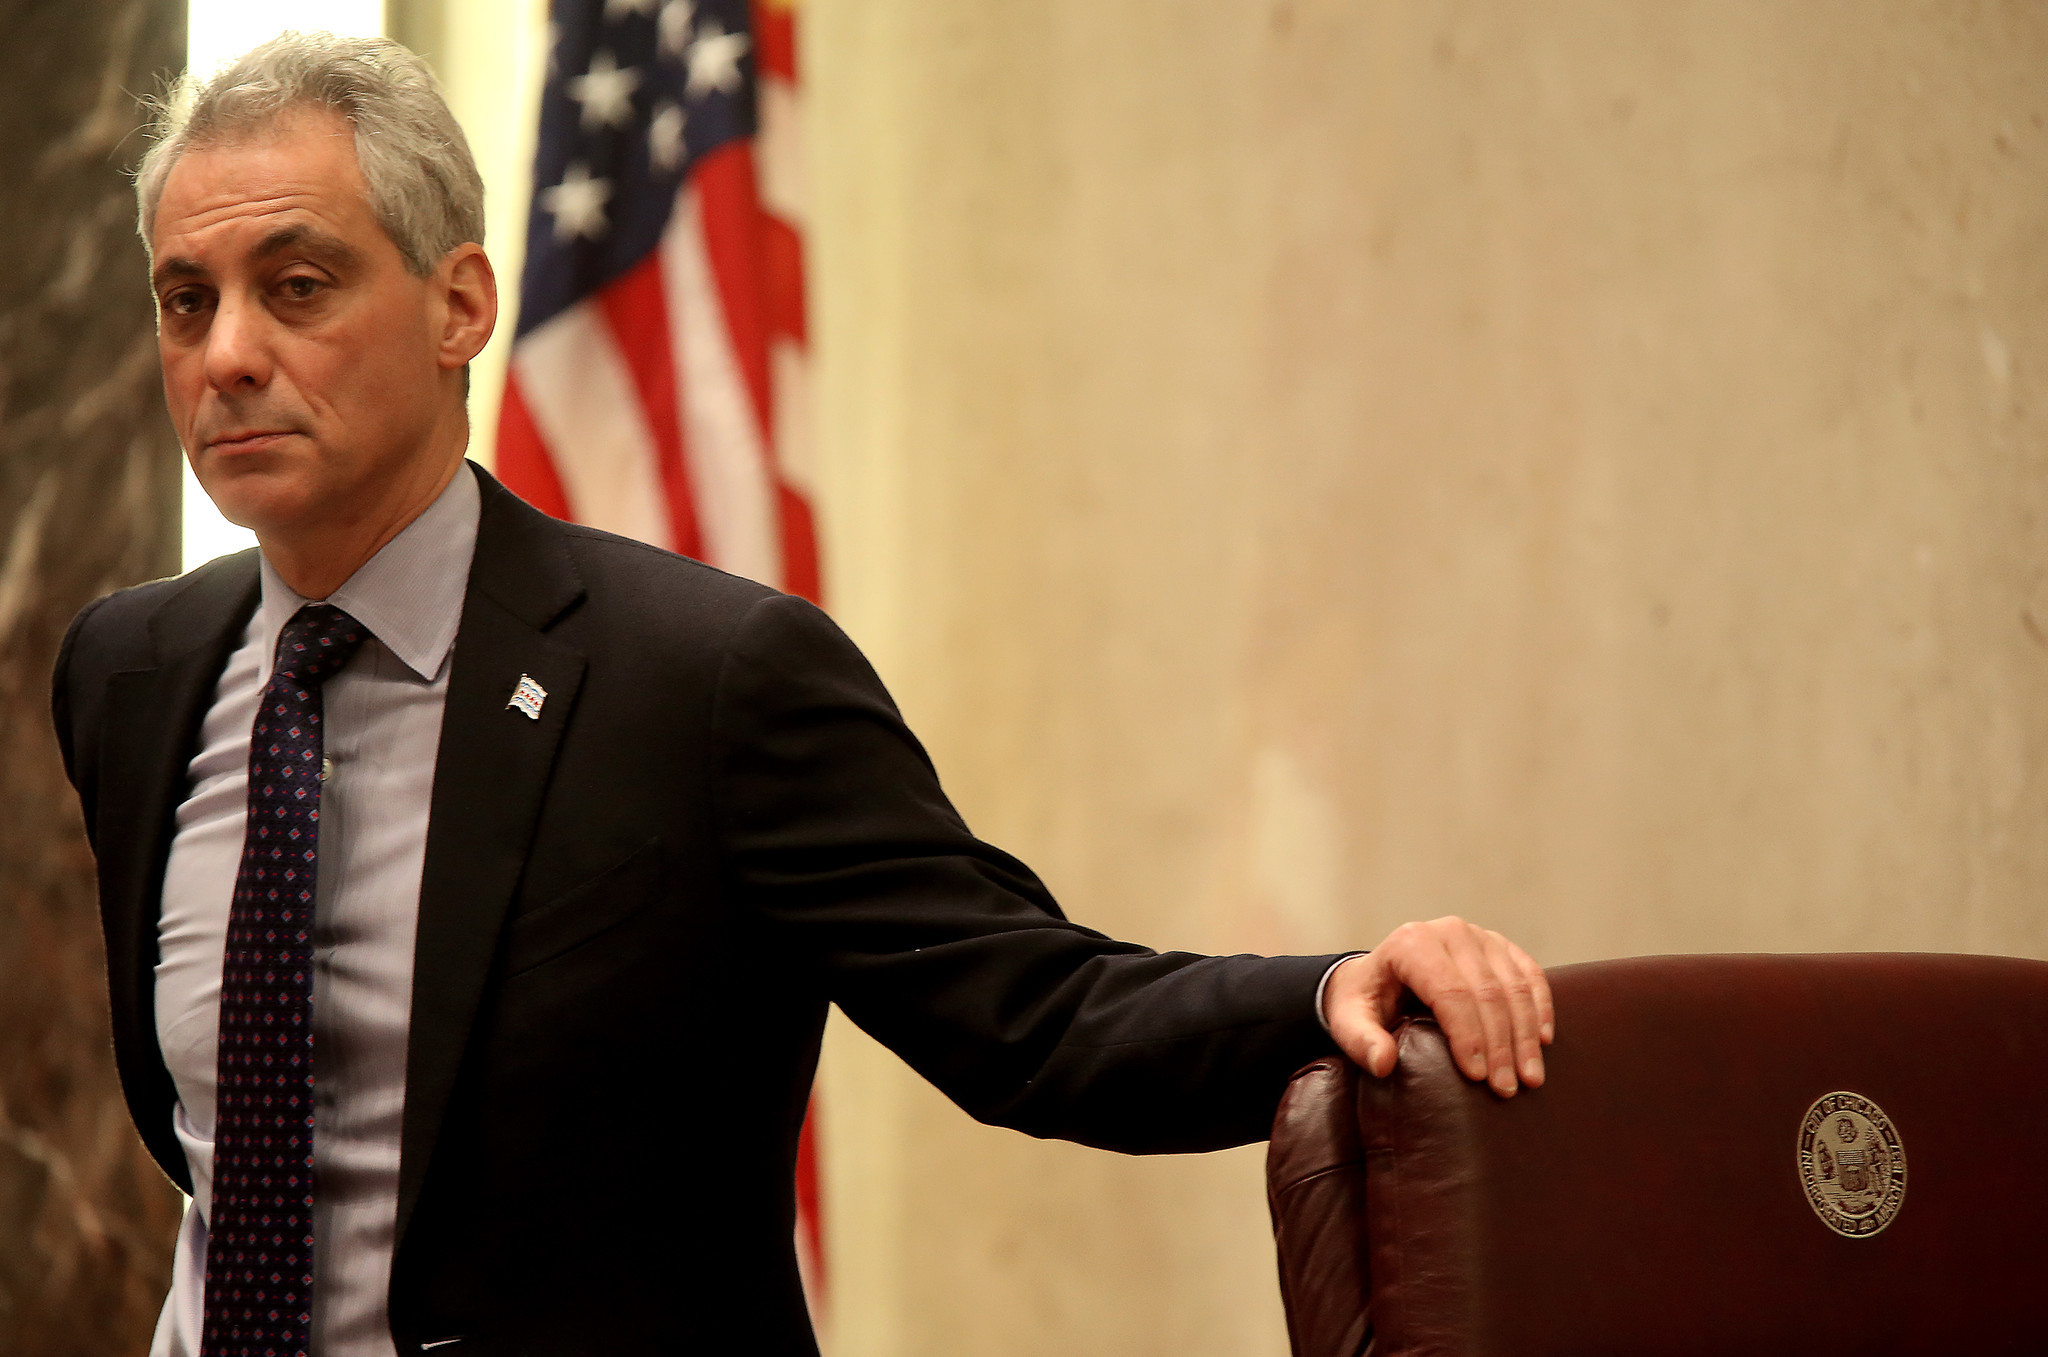 Emanuel to fast for 24 hours in support of immigration reform